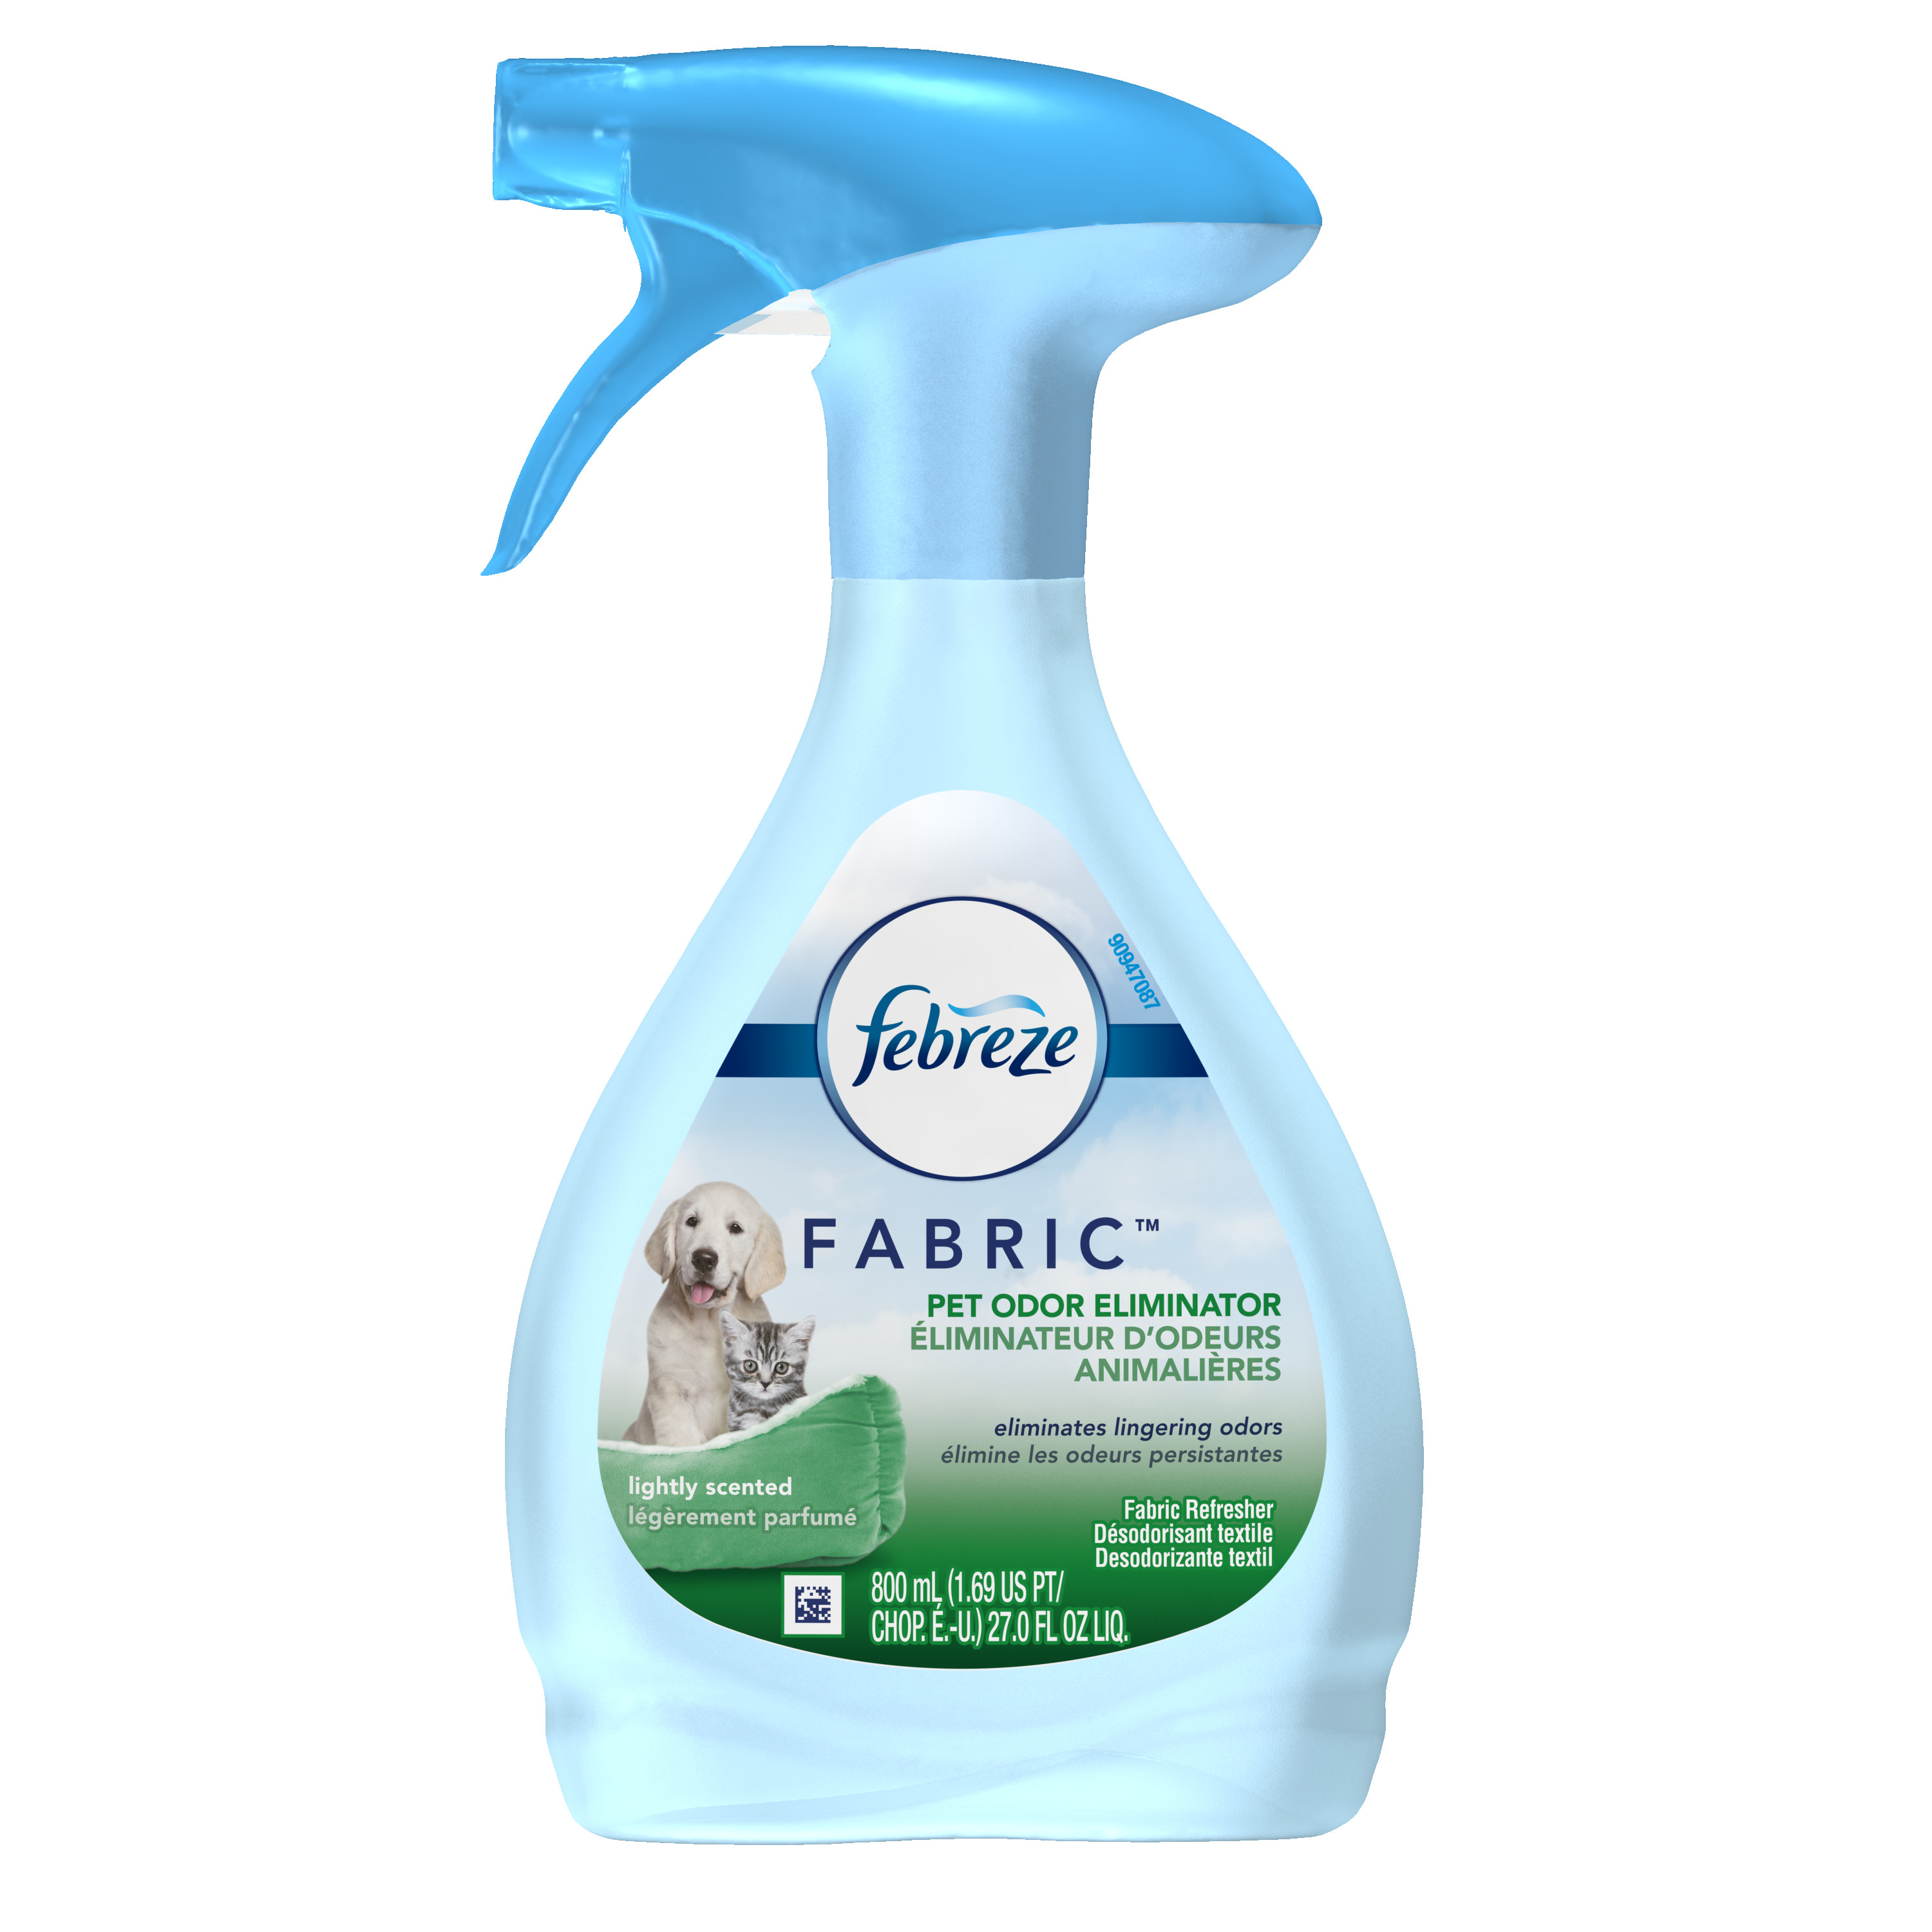 Febreze FABRIC Refresher, Pet Odor Eliminator, 1 Count, 27 oz